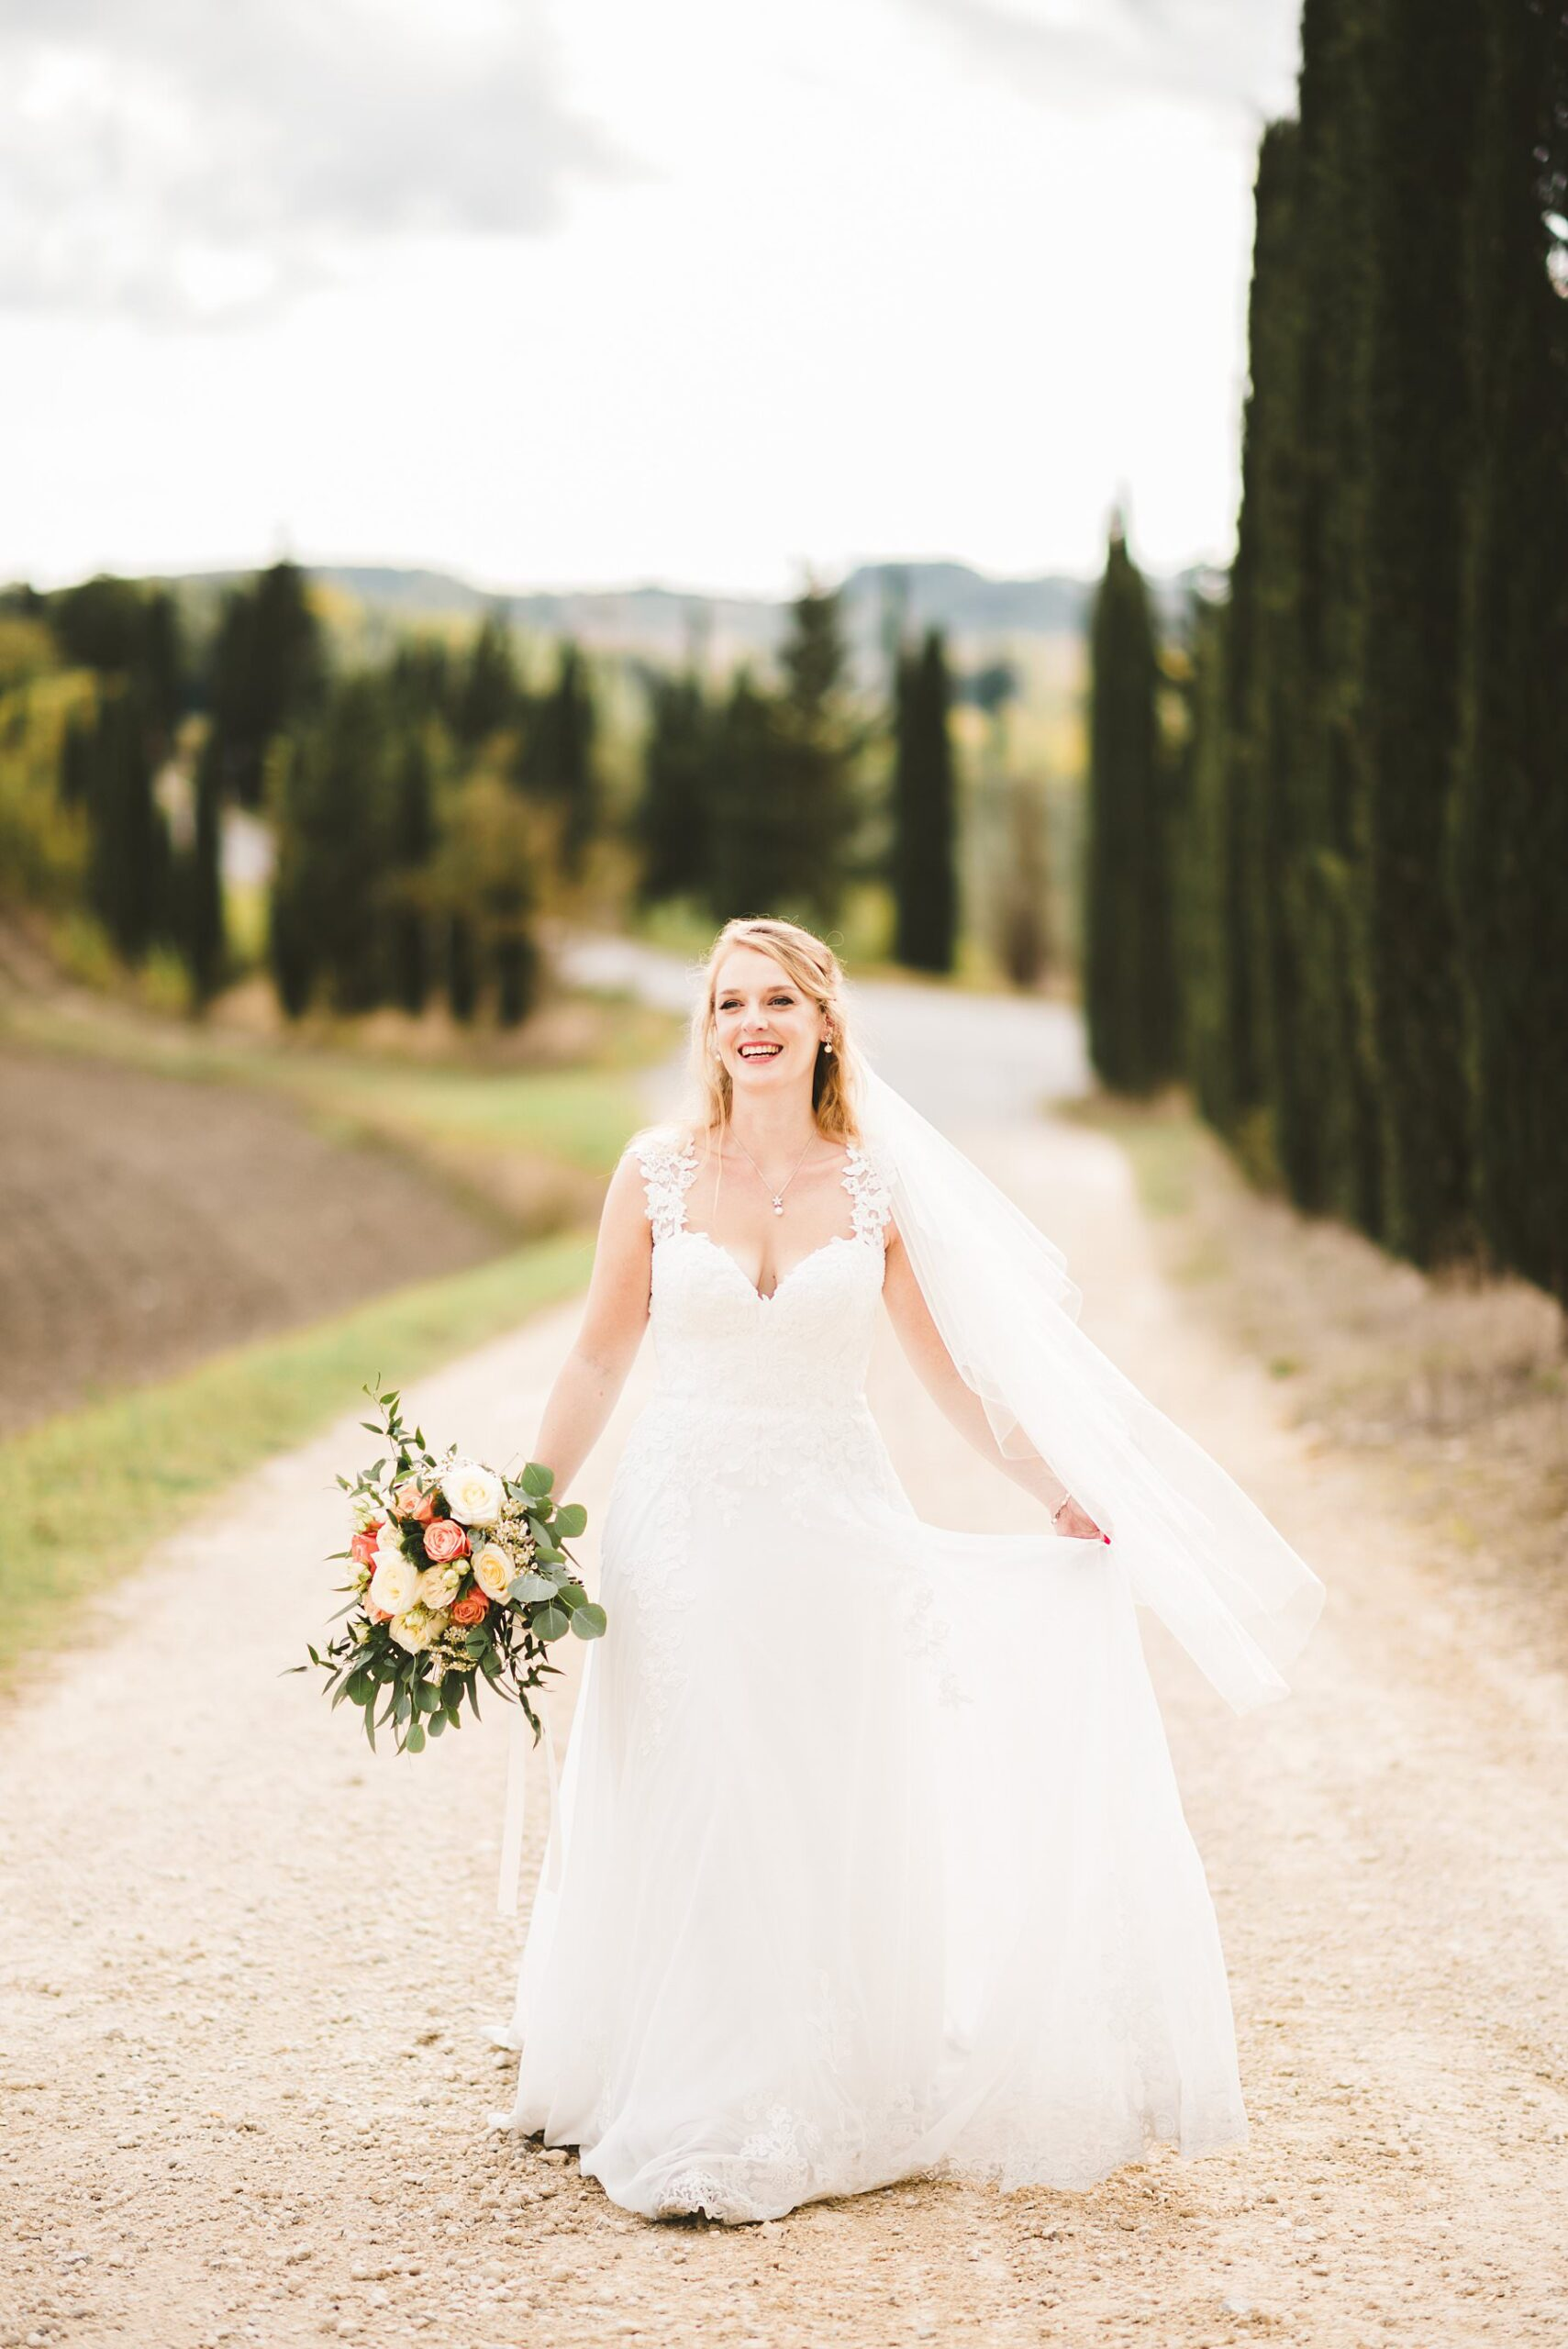 Lovely smiling bride Poppy in her Justin Alexander white wedding gown walks in the evocative cypresses road in the countryside of Siena, Tuscany